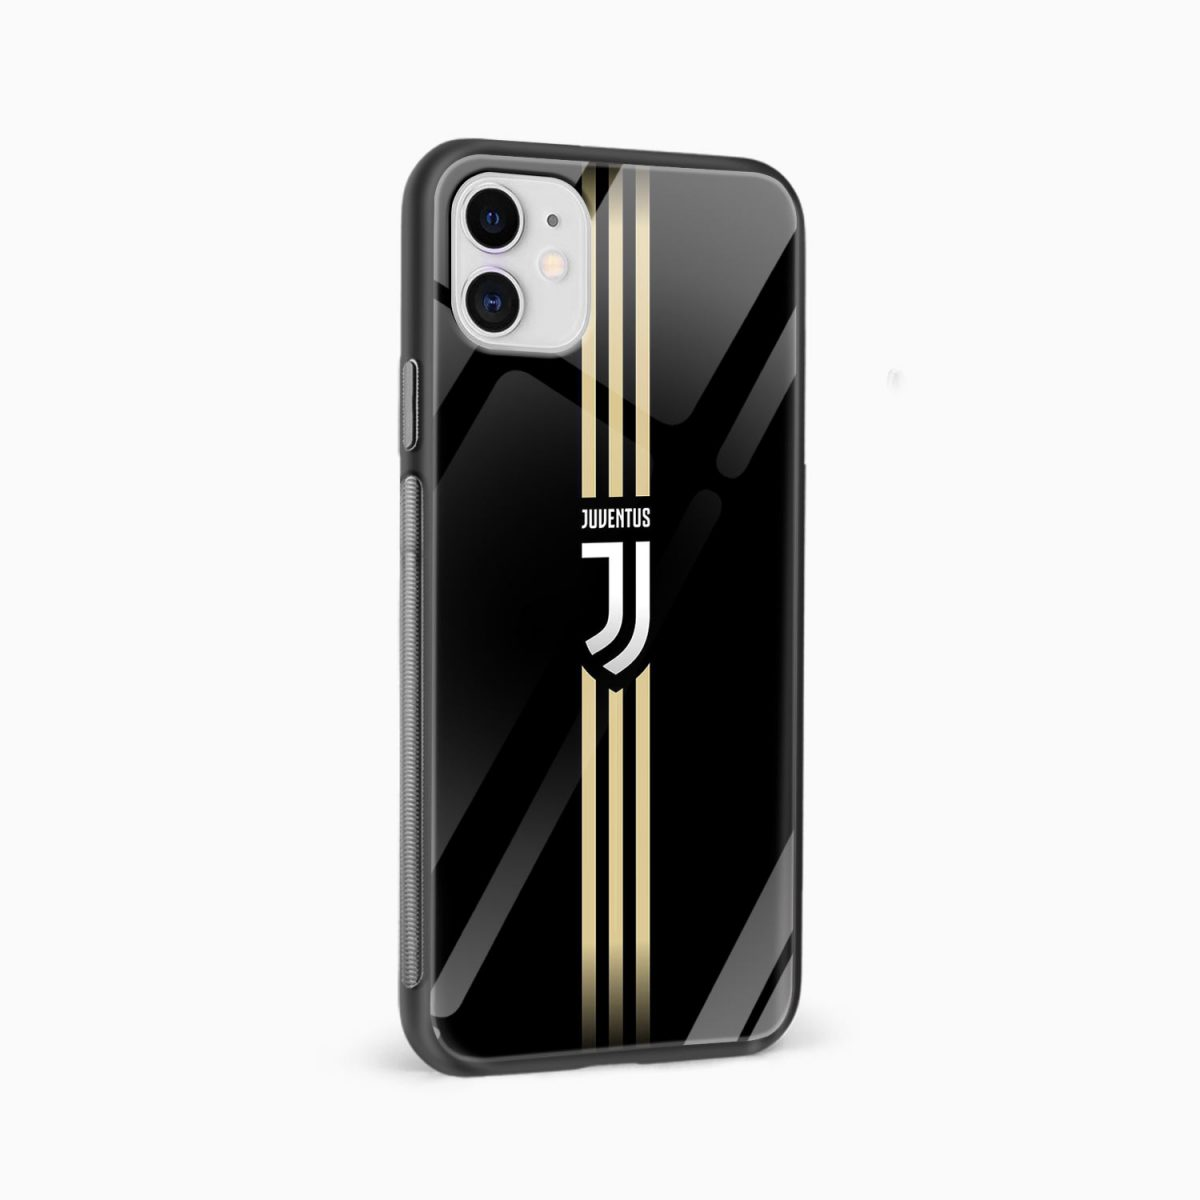 juventus iphone mobile cover side view